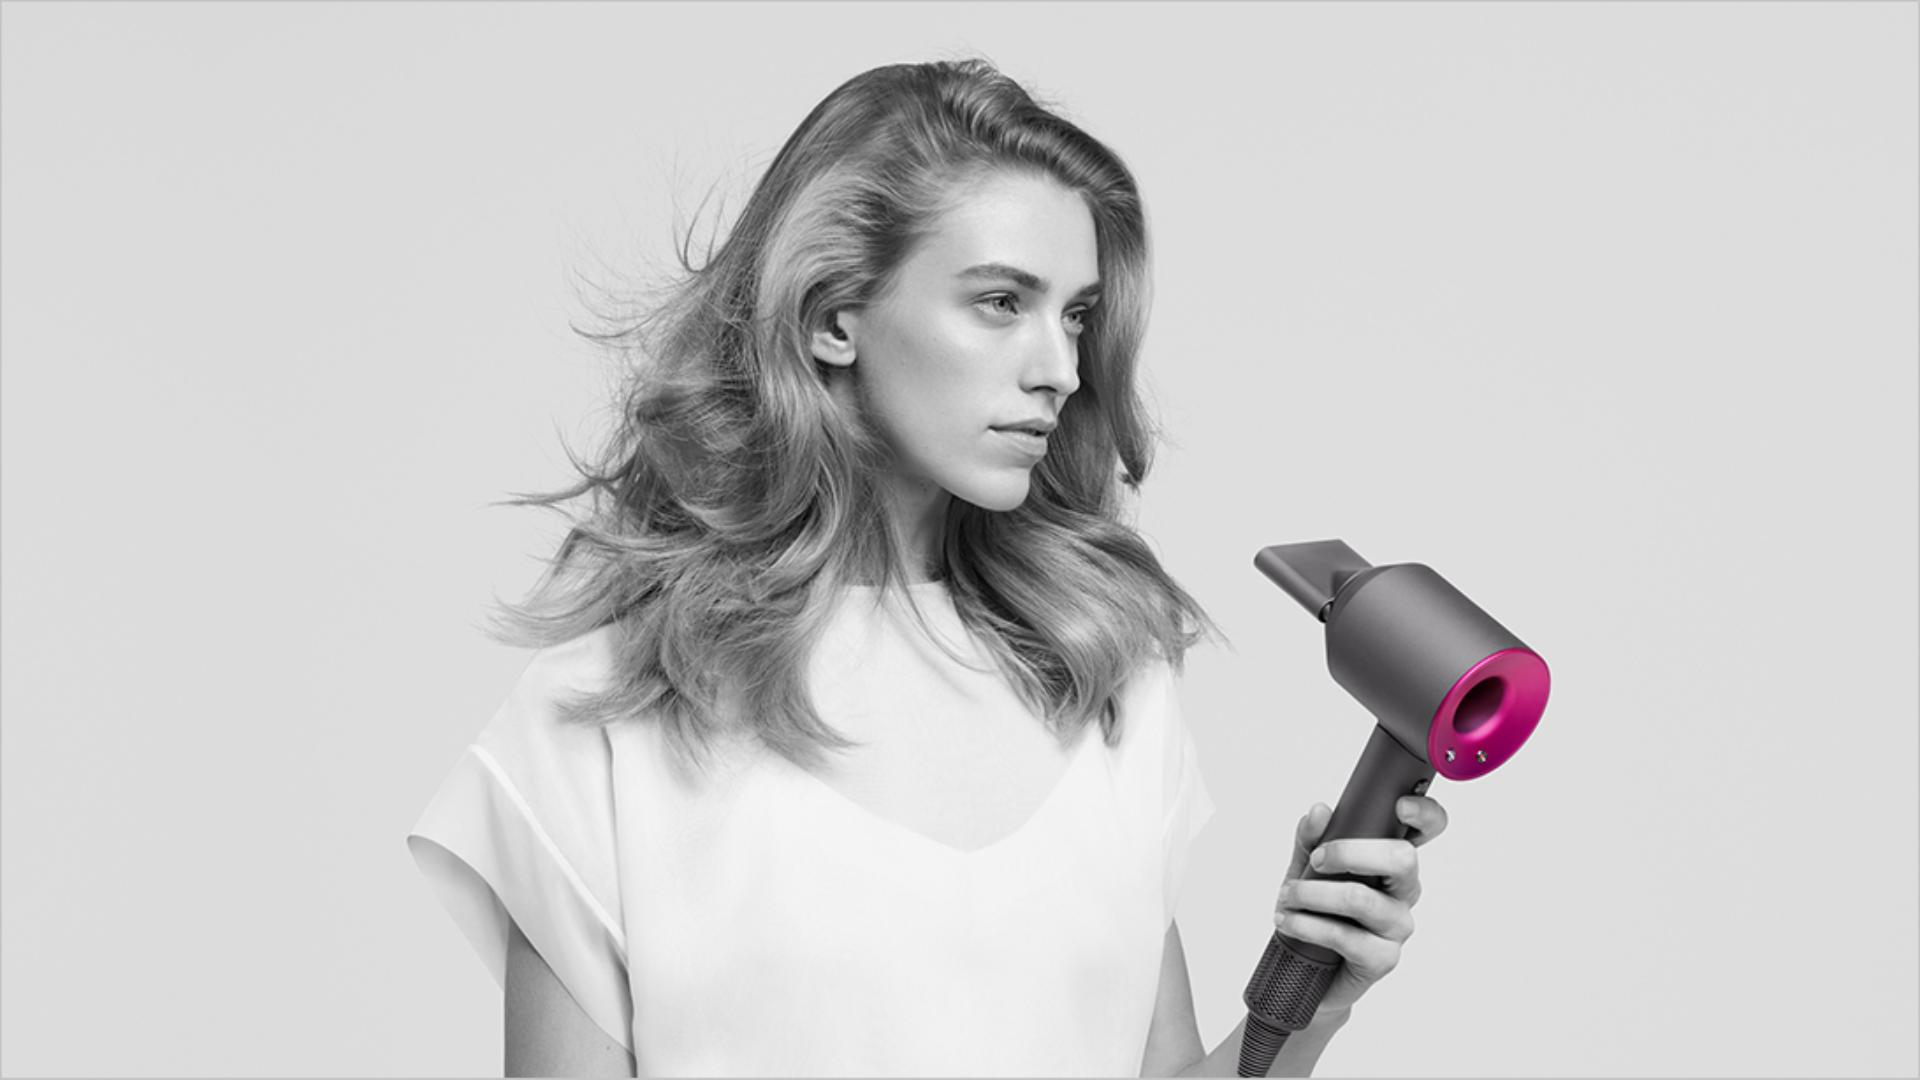 A model using the Dyson Supersonic hair dryerA model using the Dyson Supersonic hair dryer